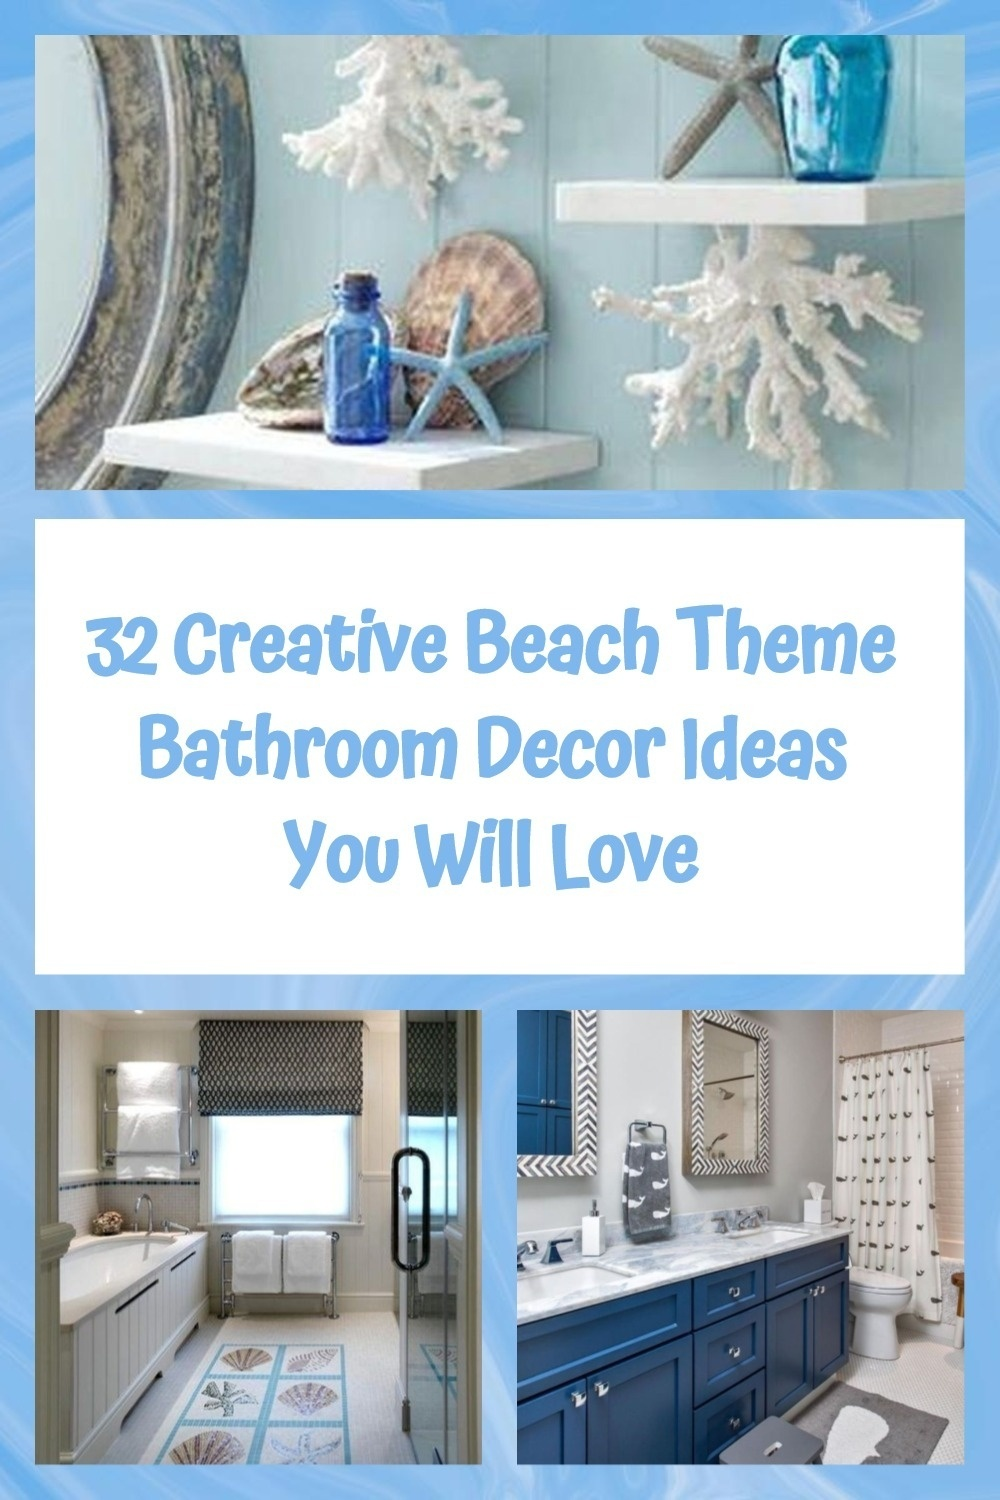 32 Creative Beach Theme Bathroom Decor Ideas You Will Love